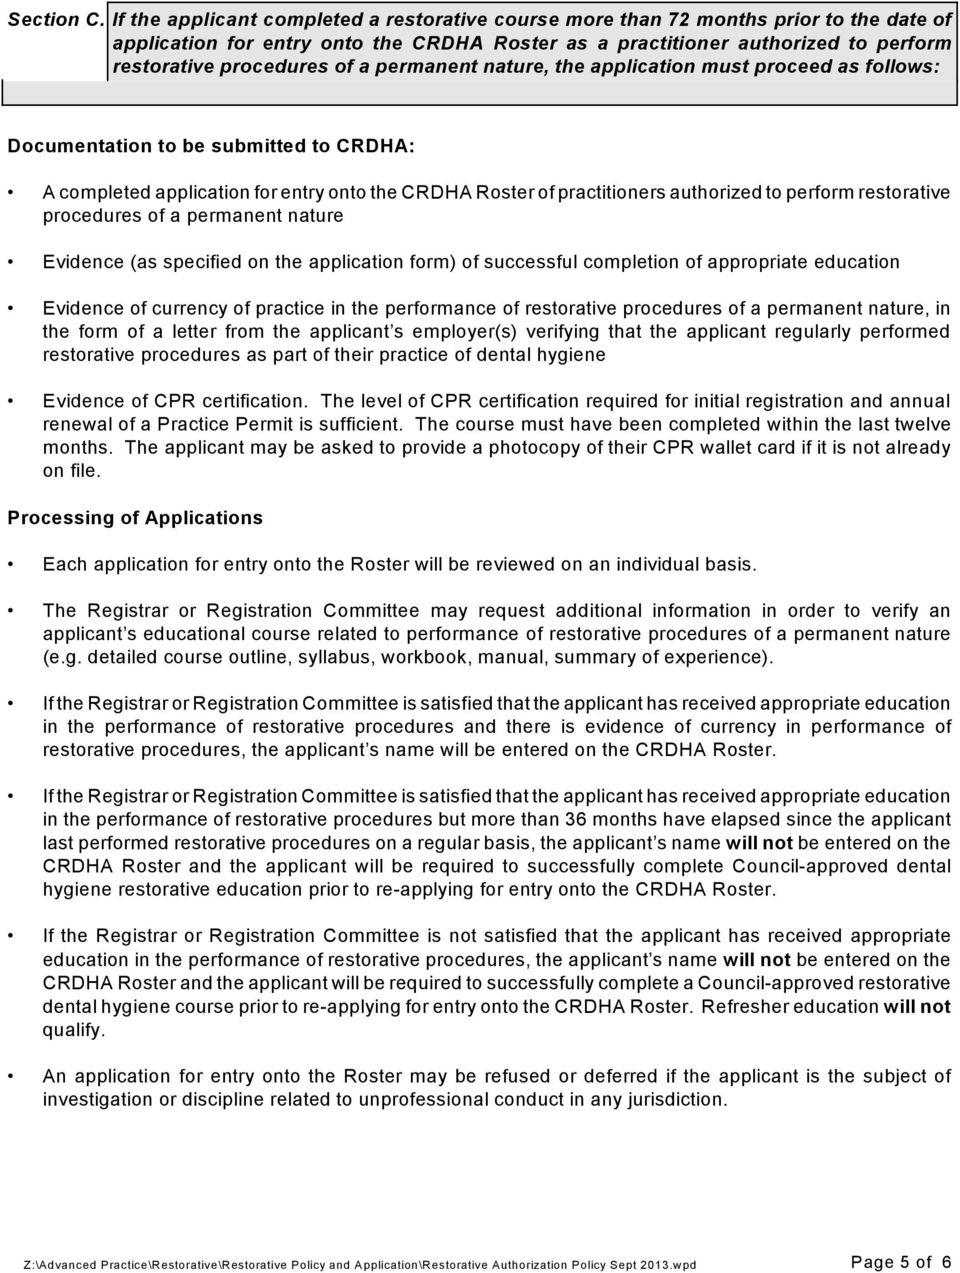 a permanent nature, the application must proceed as follows: Documentation to be submitted to CRDHA: A completed application for entry onto the CRDHA Roster of practitioners authorized to perform